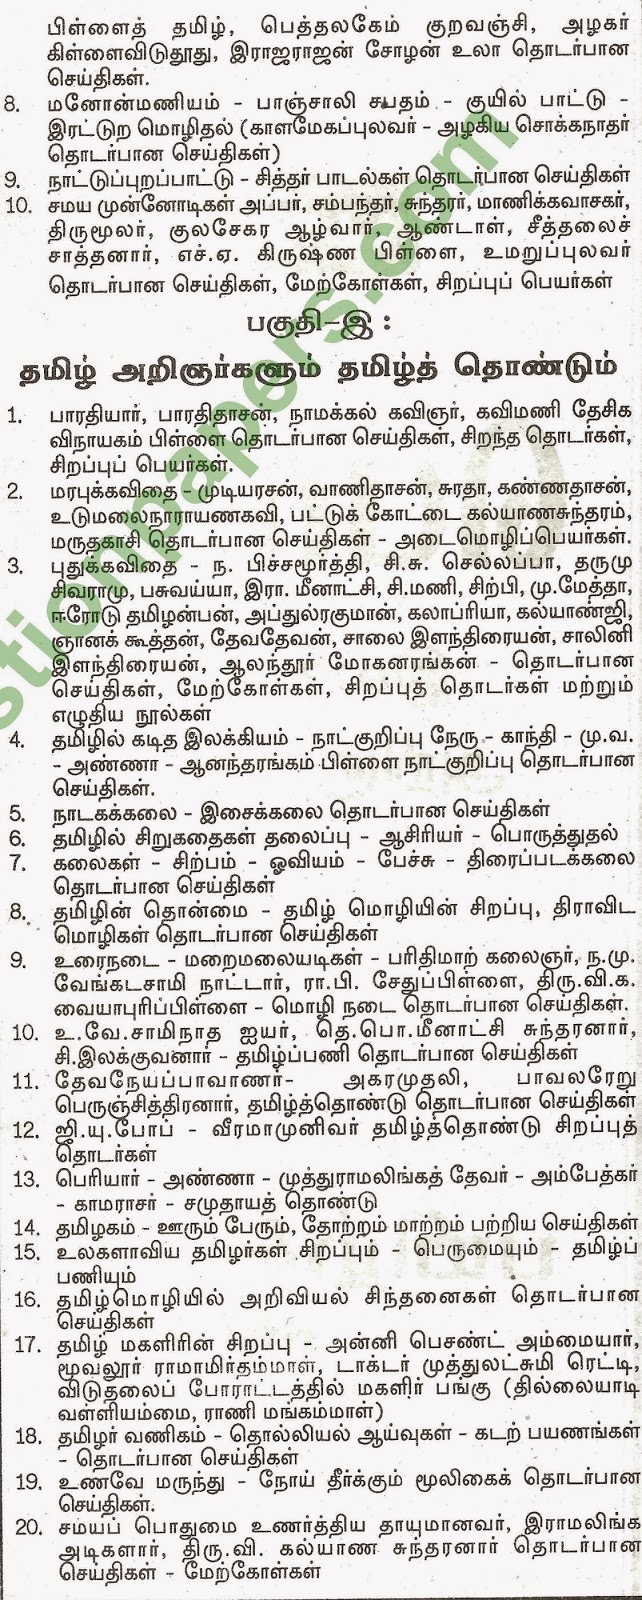 tnpsc-group-4-exam-syllabus-tnpsc-general-tamil-syllabus-new-tnpsc-group-4